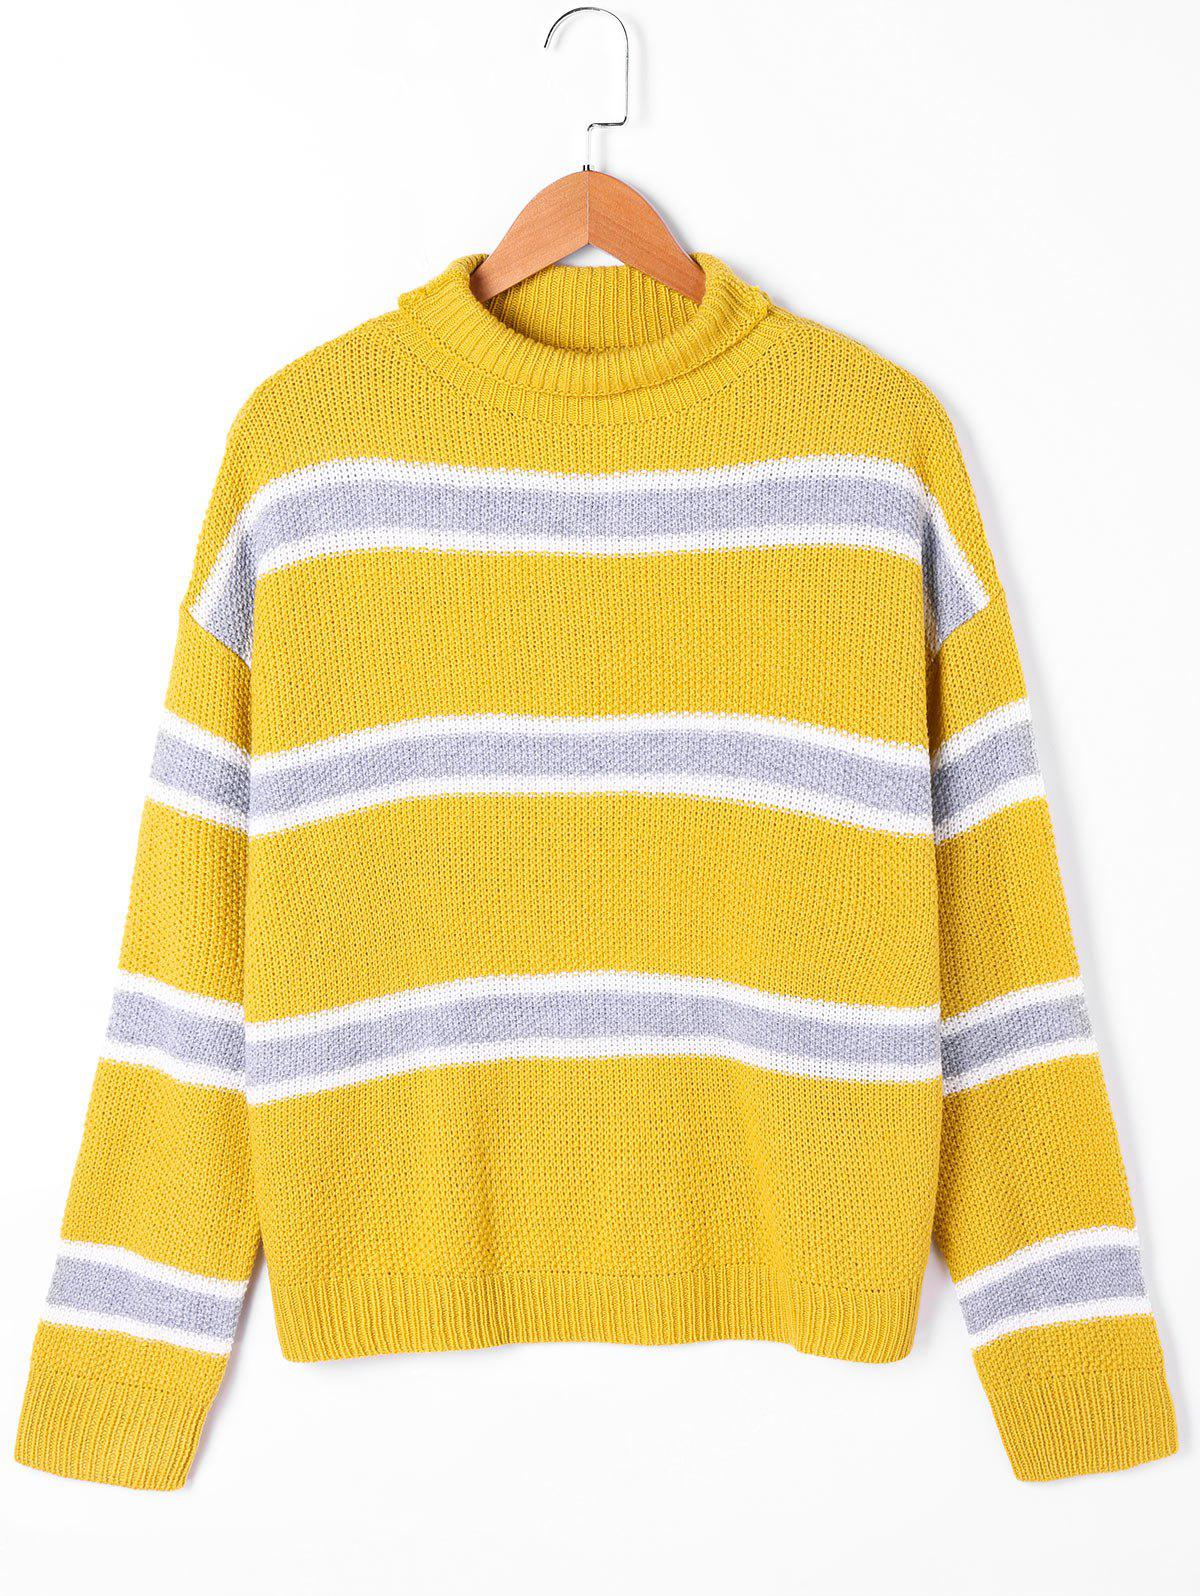 Striped Drop Shoulder Turtleneck Sweater - YELLOW M